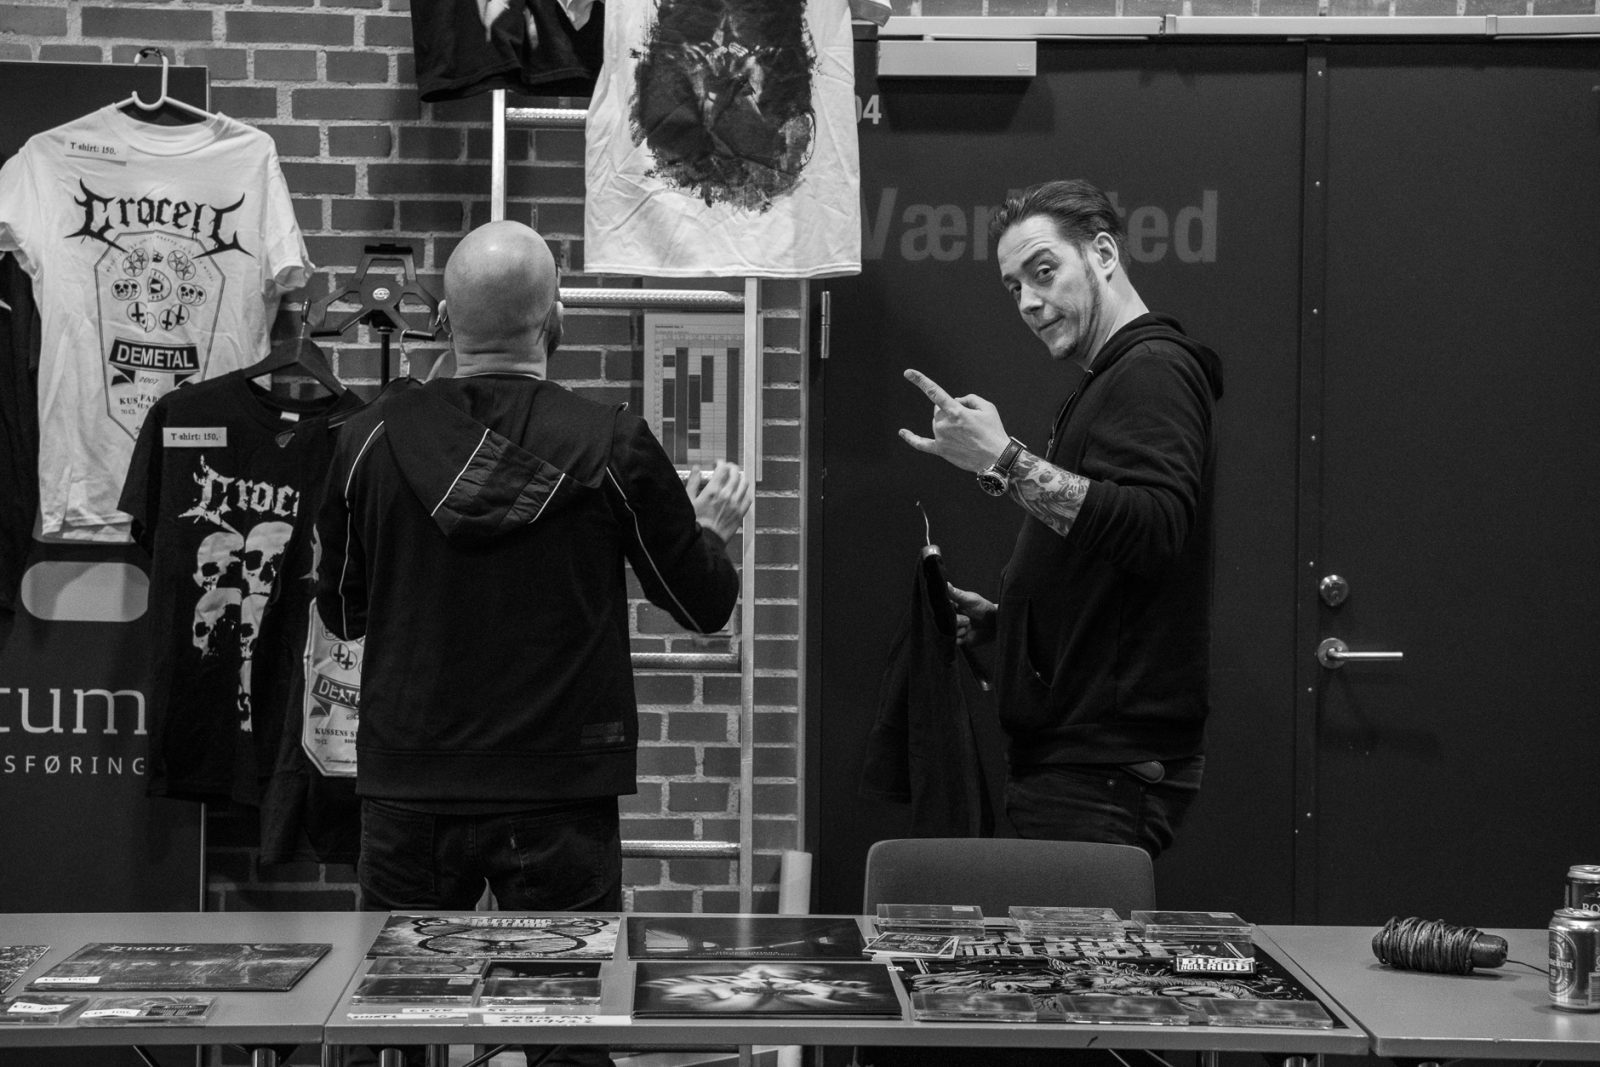 Concert Photography: Casper Villumsen and Brian Olsson getting merchandise ready at Hammer Smashed Face in Frederikshavn, 2019